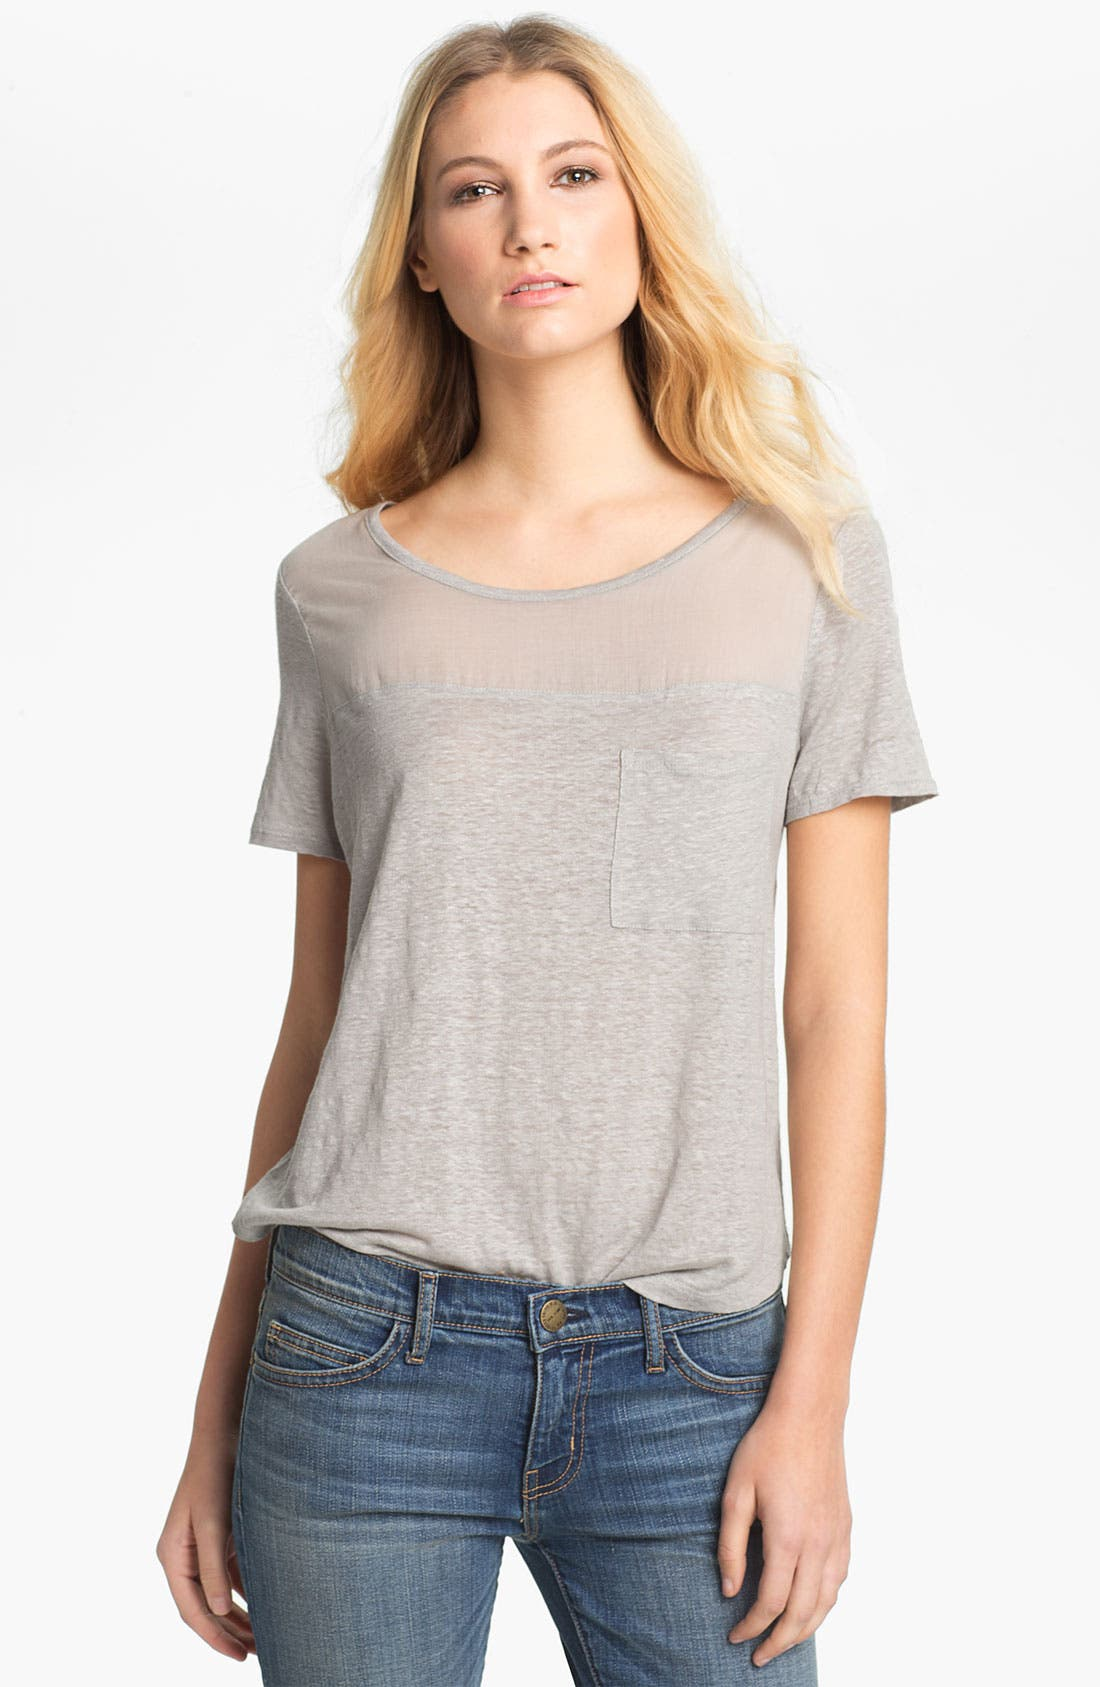 Alternate Image 1 Selected - Soft Joie 'Rhett' Sheer Yoke Pocket Tee